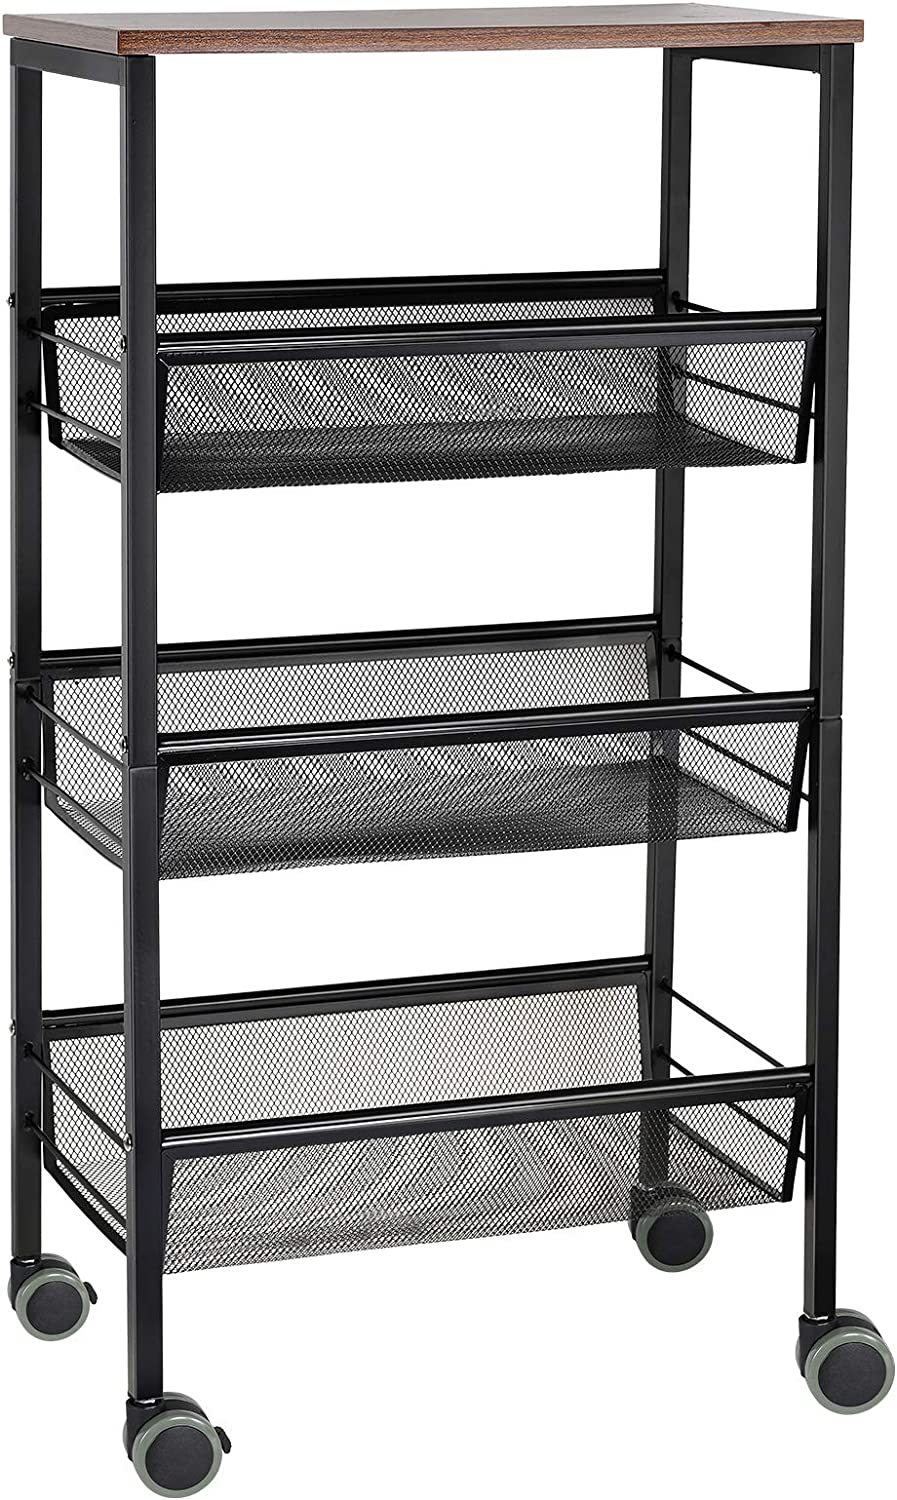 NEX Rustic Kitchen Cart on Wheels, 3-Tier Wire Storage Cart, Wood Top and Metal Frame, Black